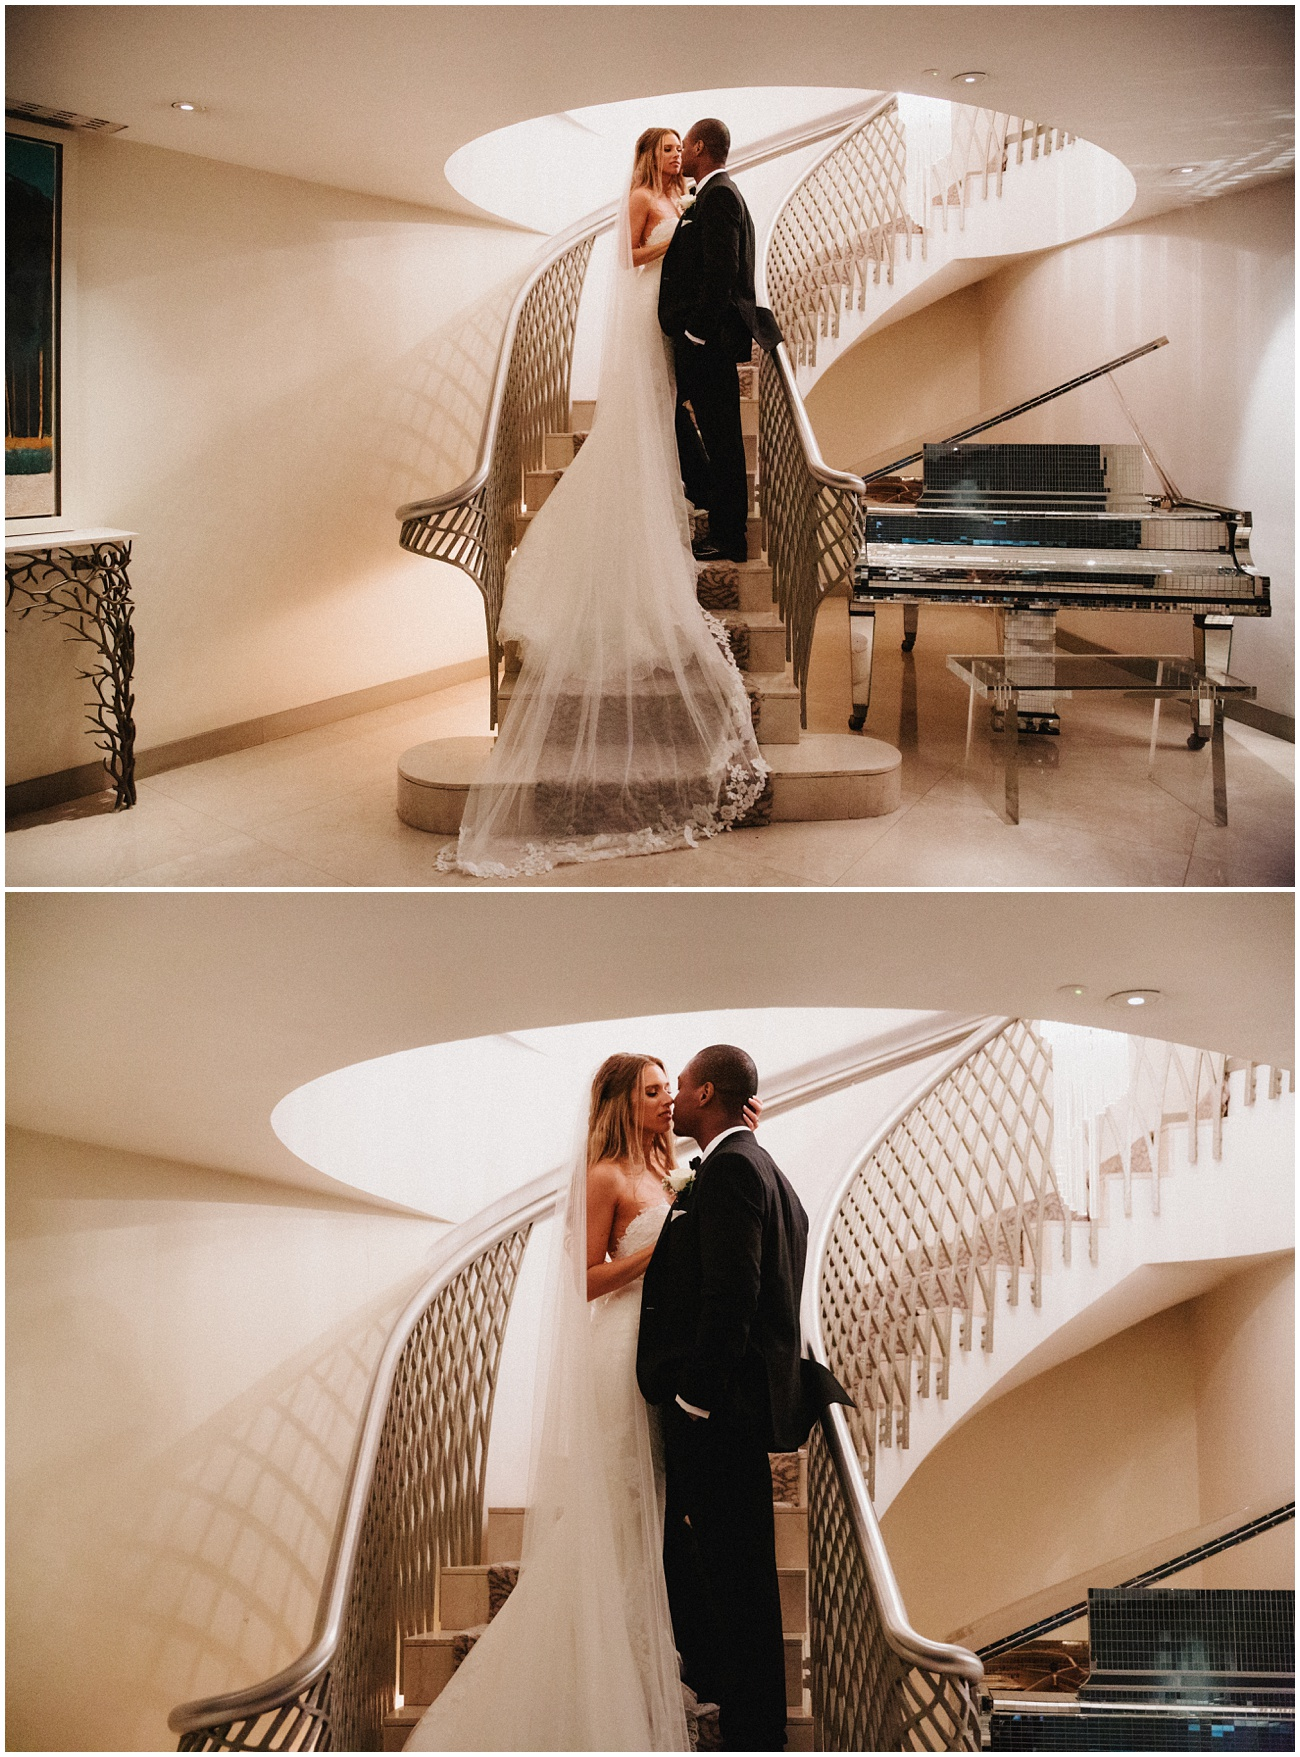 The bride and groom stand on the stairs at the Dorchester Hotel in London and look at each other posing for the camera